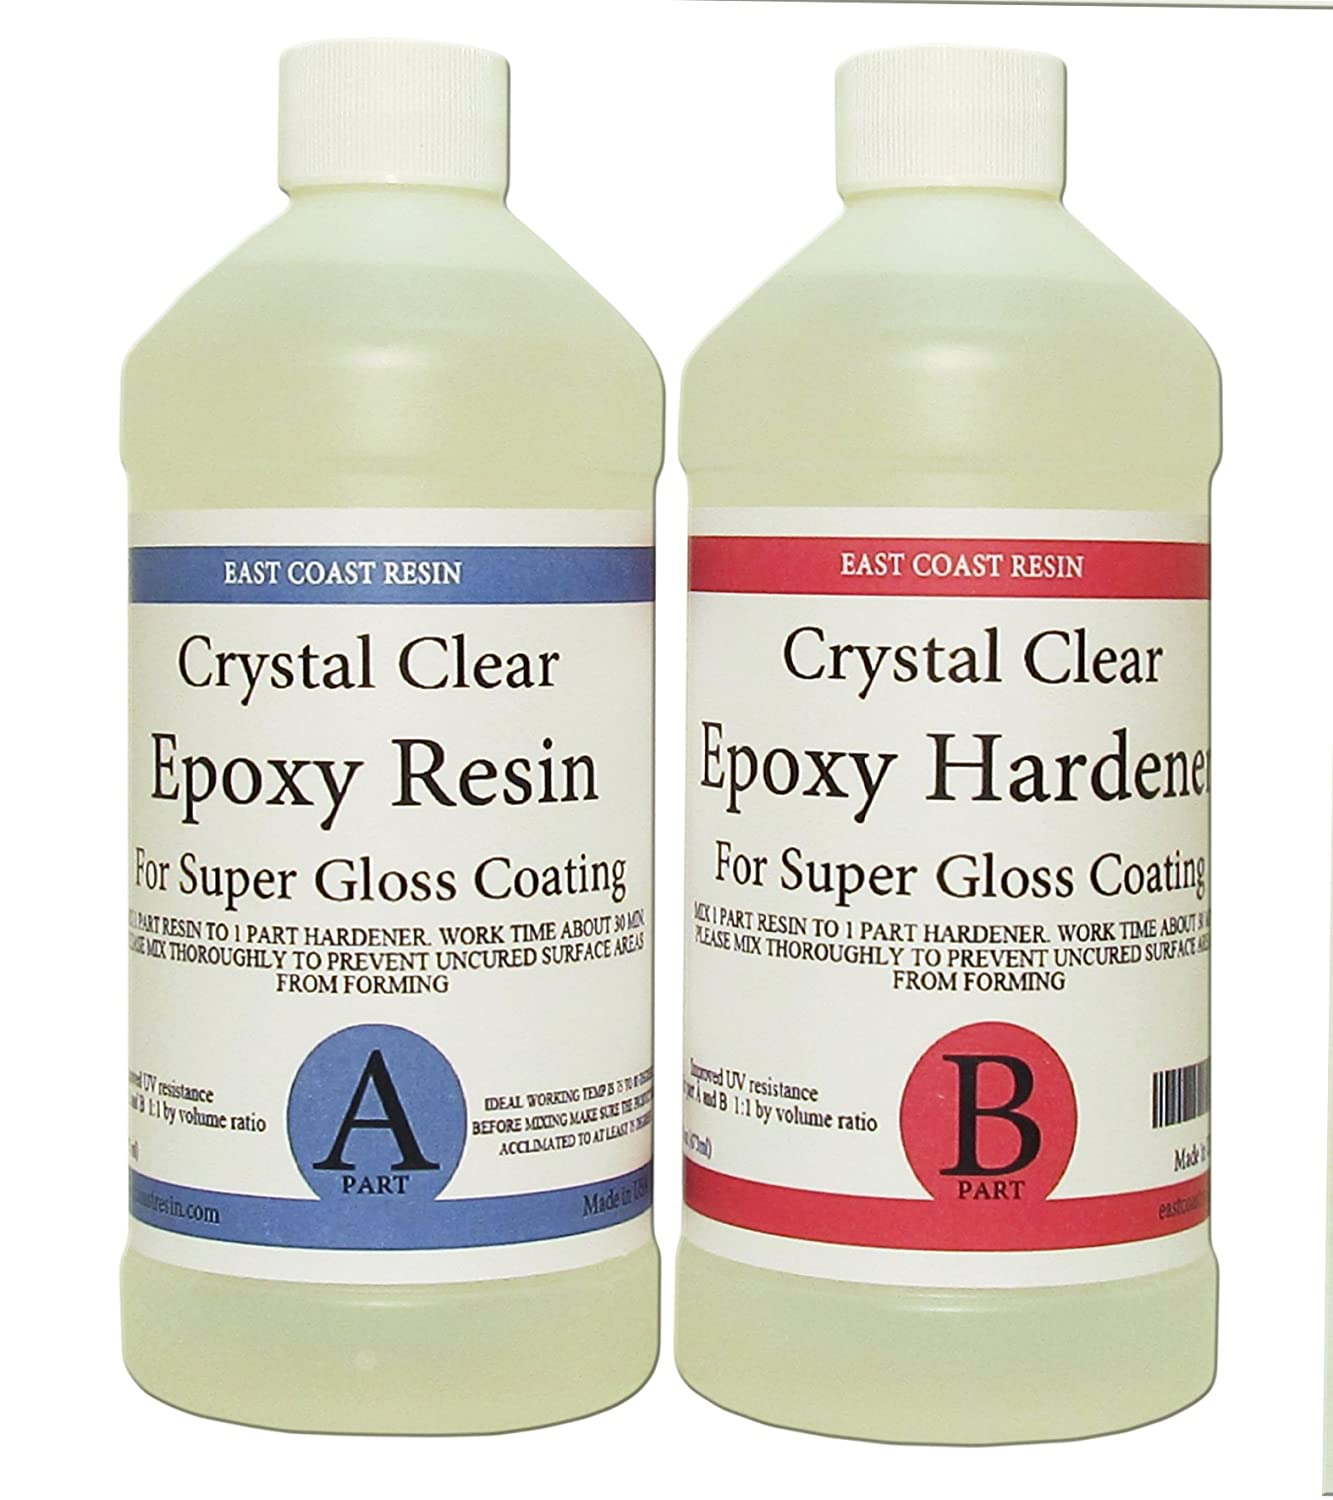 epoxy resin crystal clear 32 oz kit for super gloss coating and